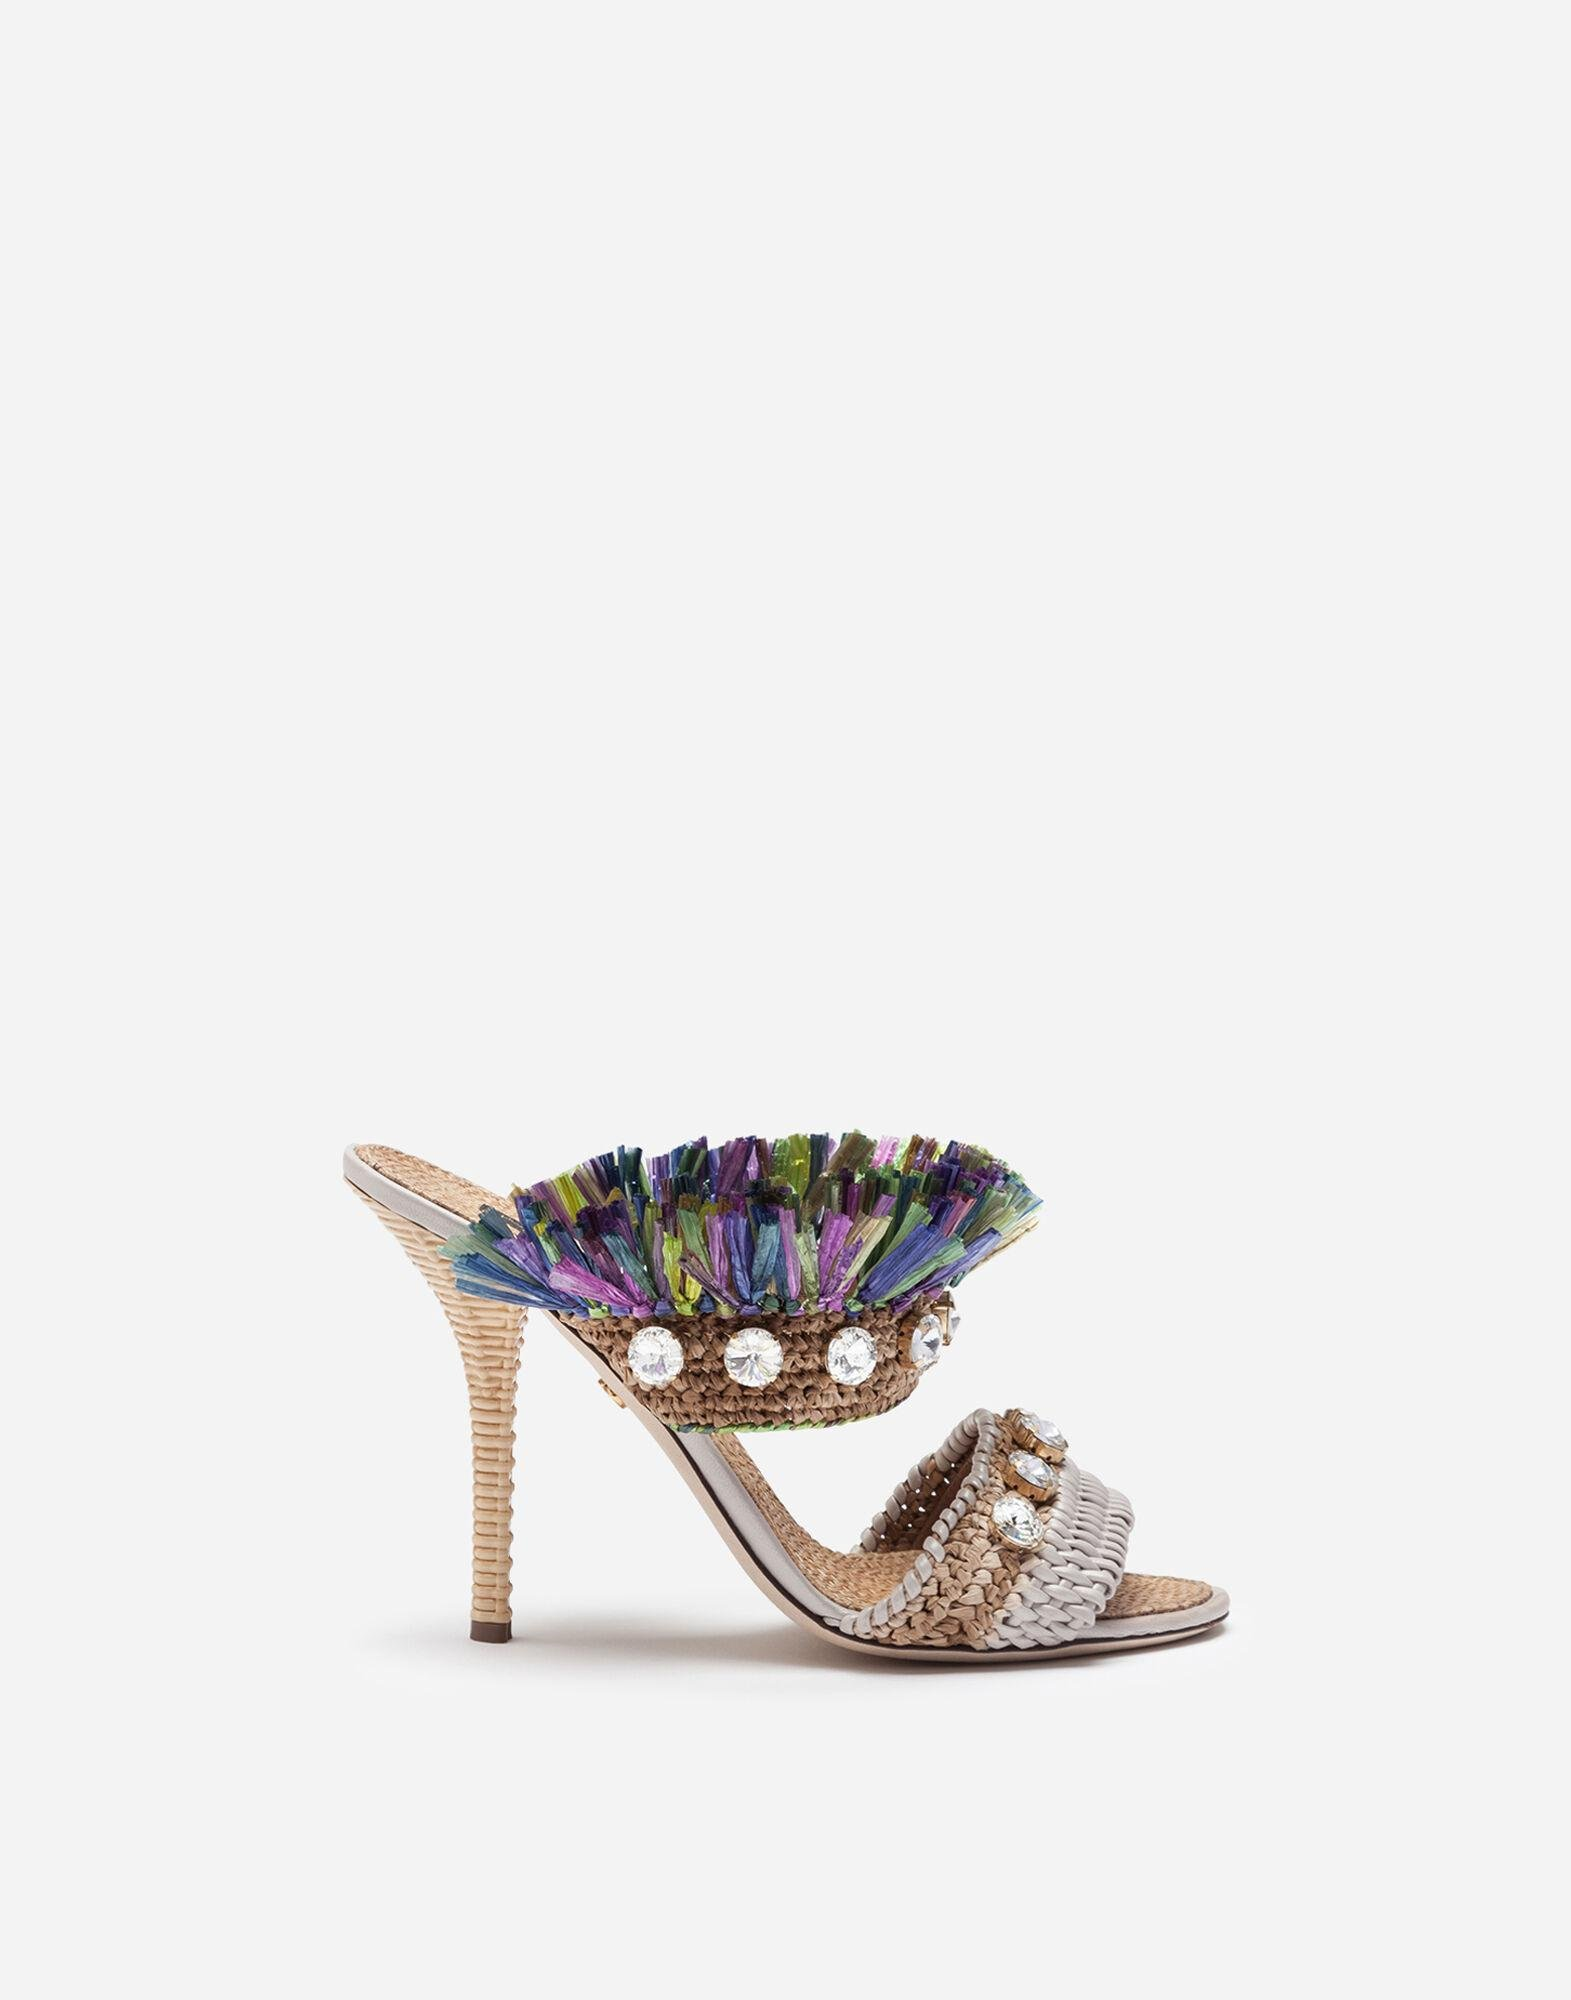 Mules in straw with bejeweled embroidery